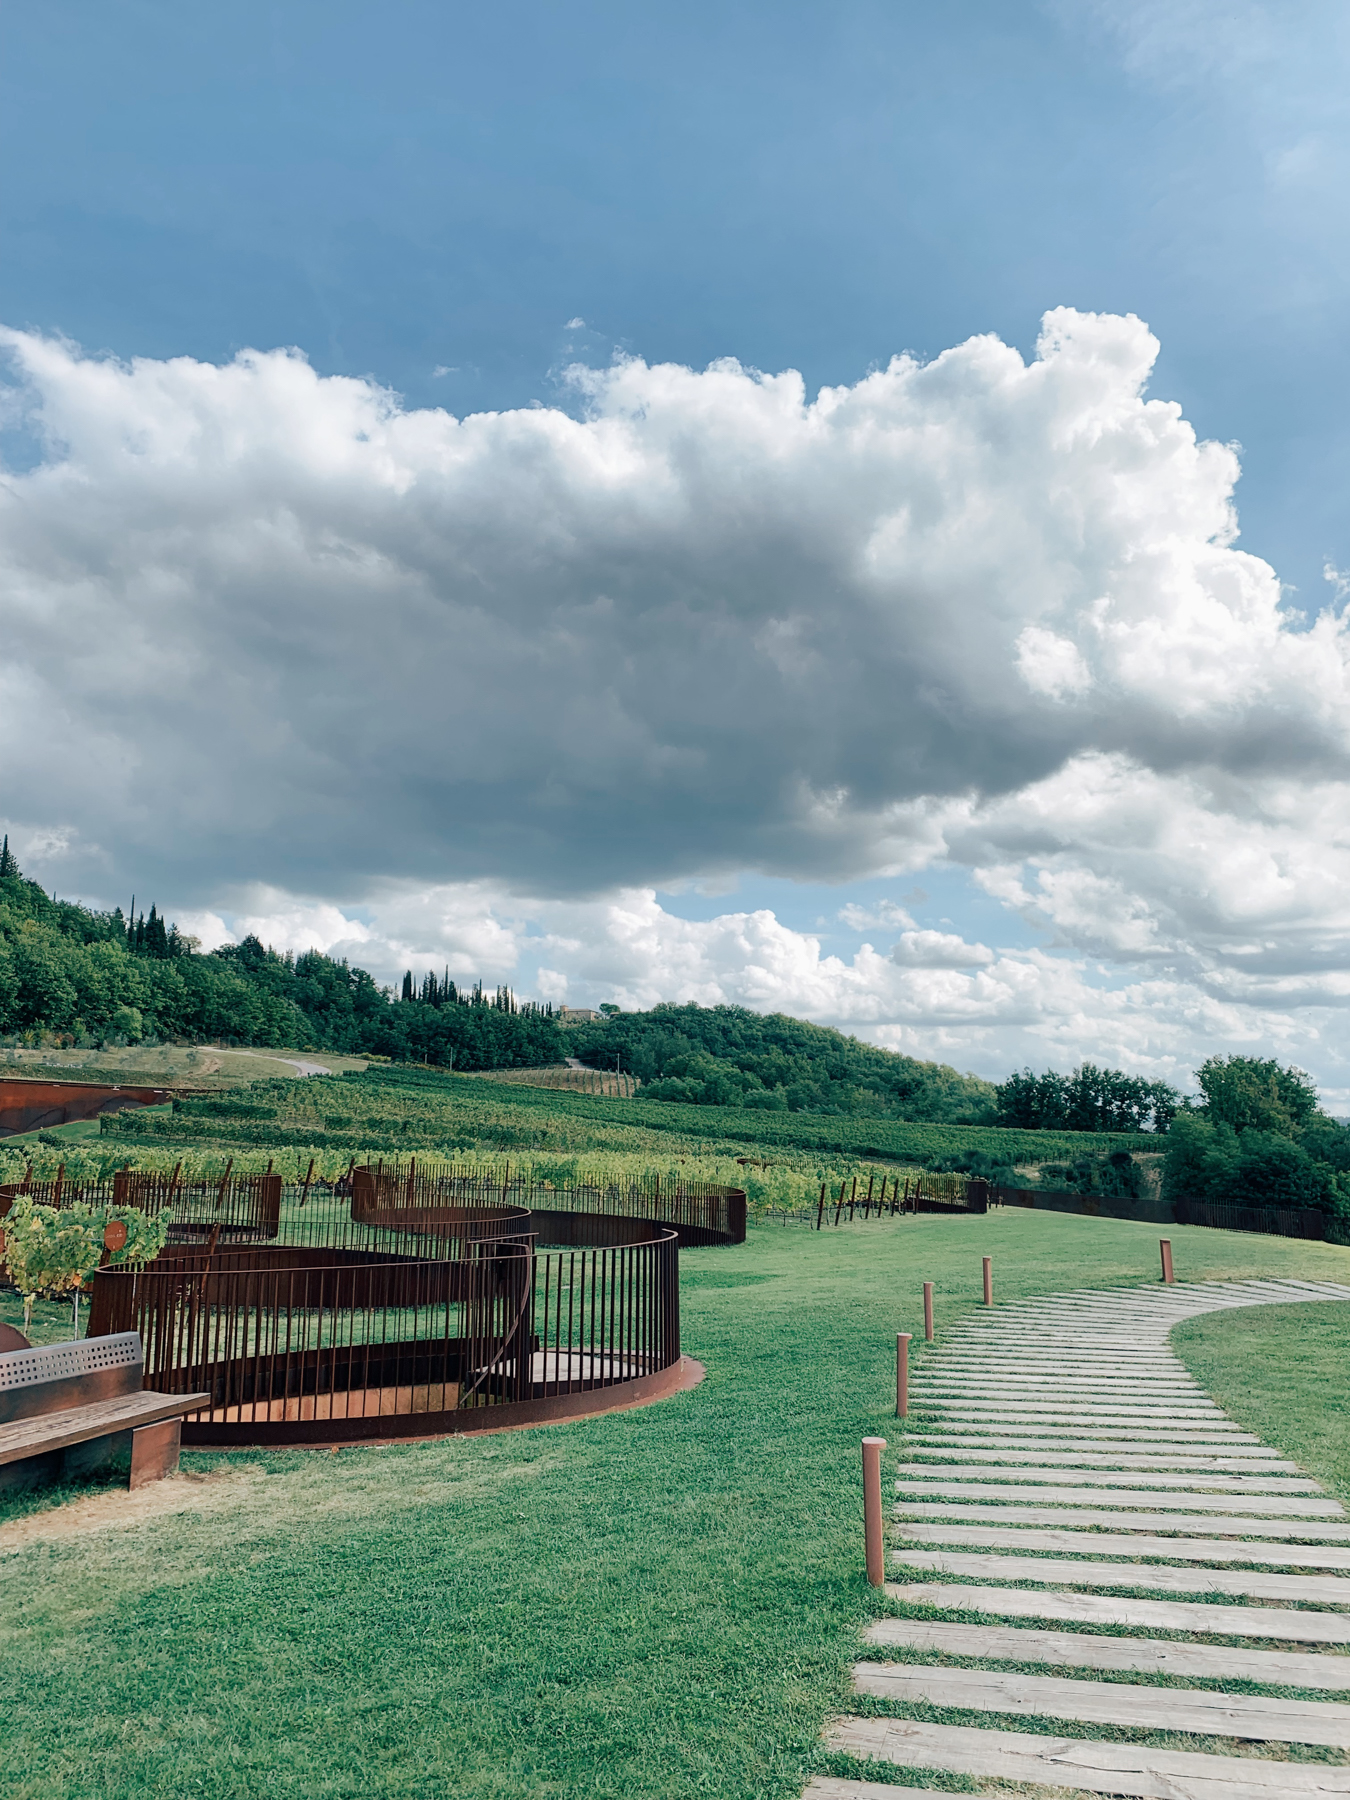 Antinori winery was built into the side of the hill, it was amazing!